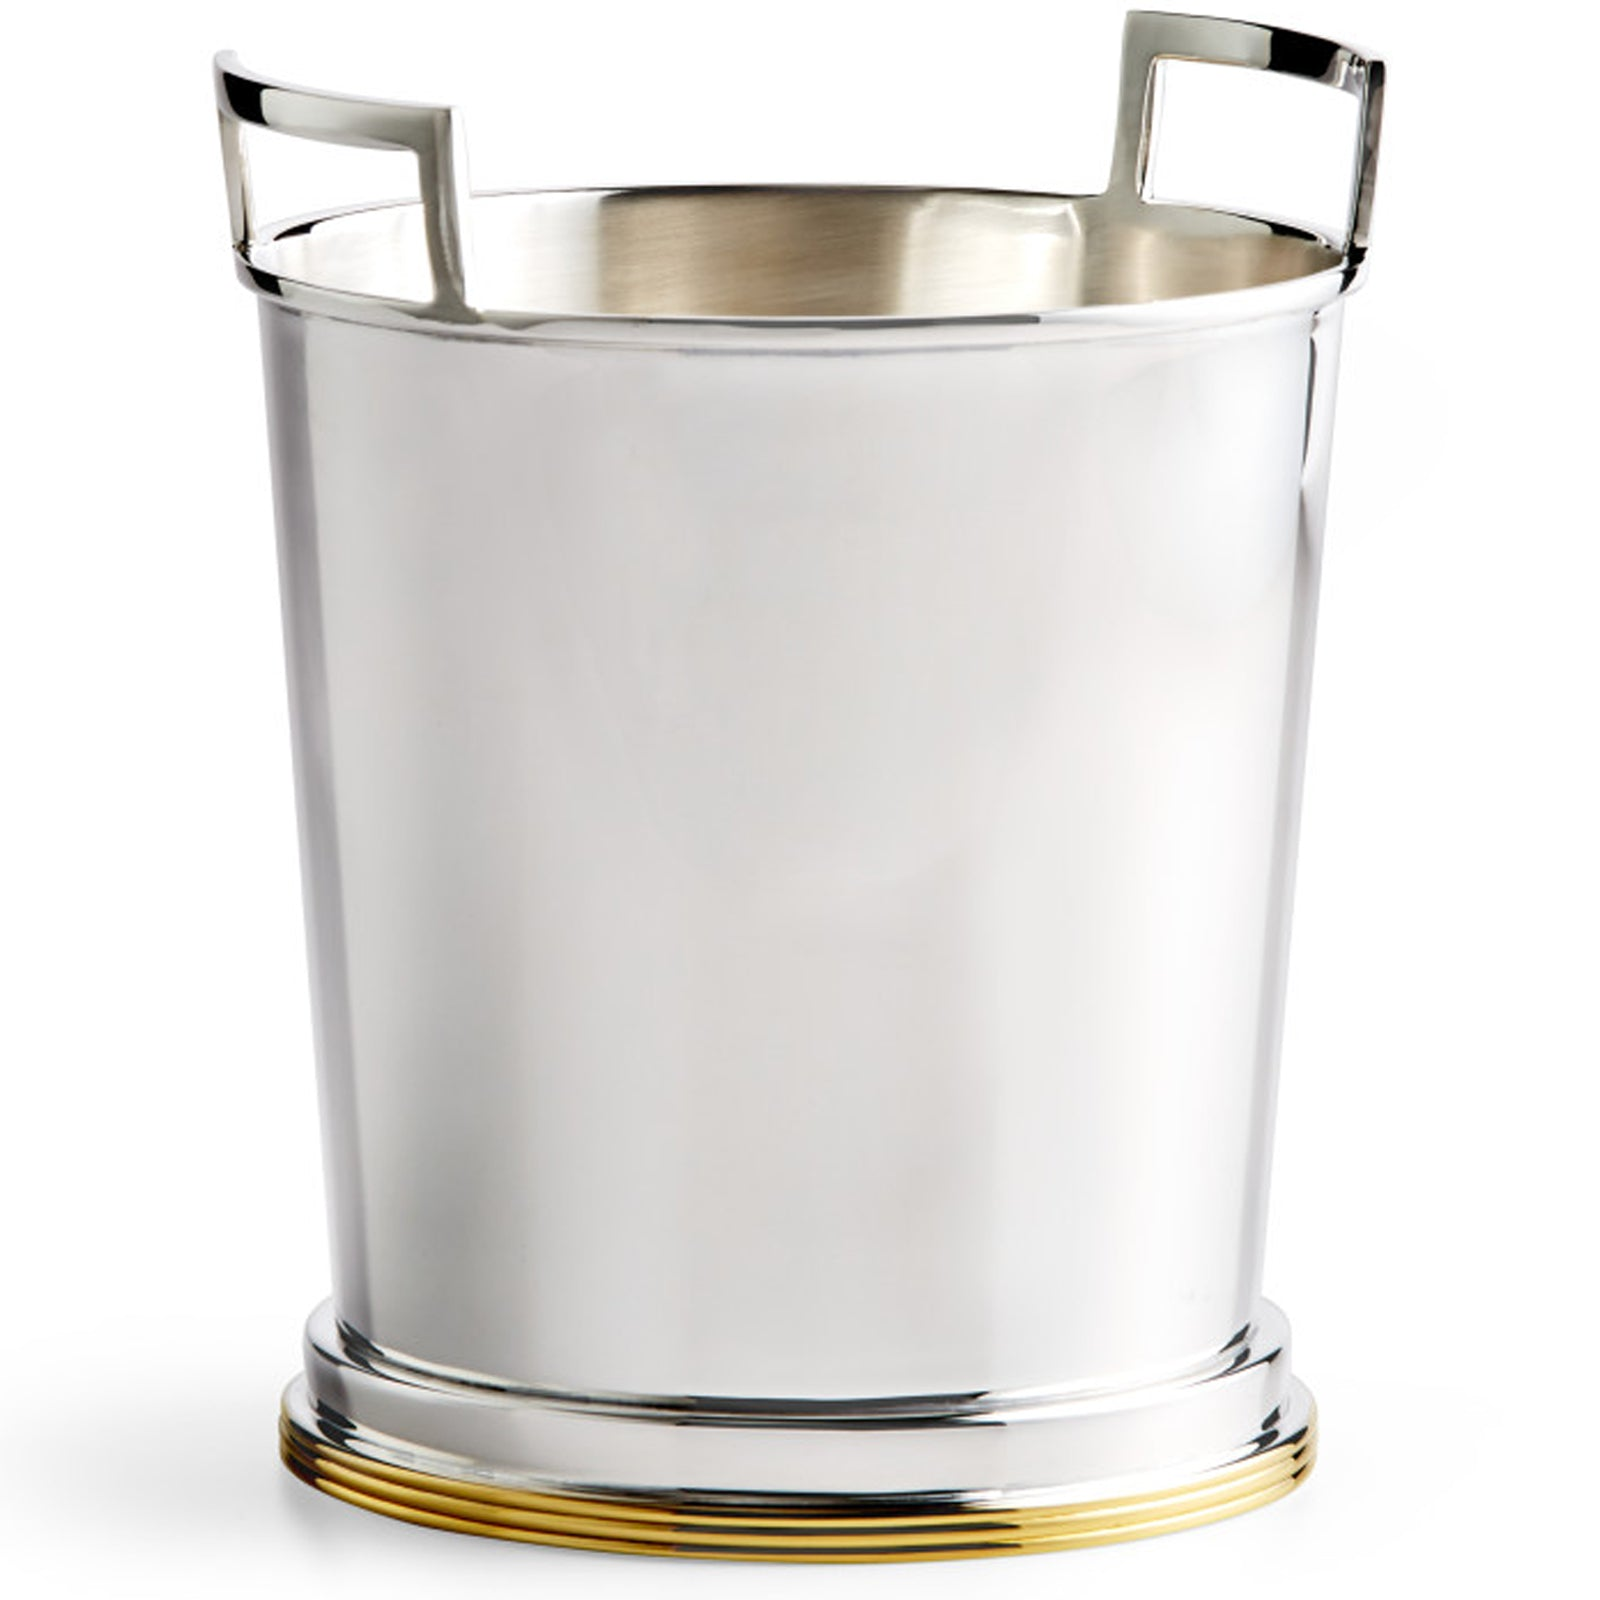 Kipton Ice Bucket by Ralph lauren Home on LuxDeco.com